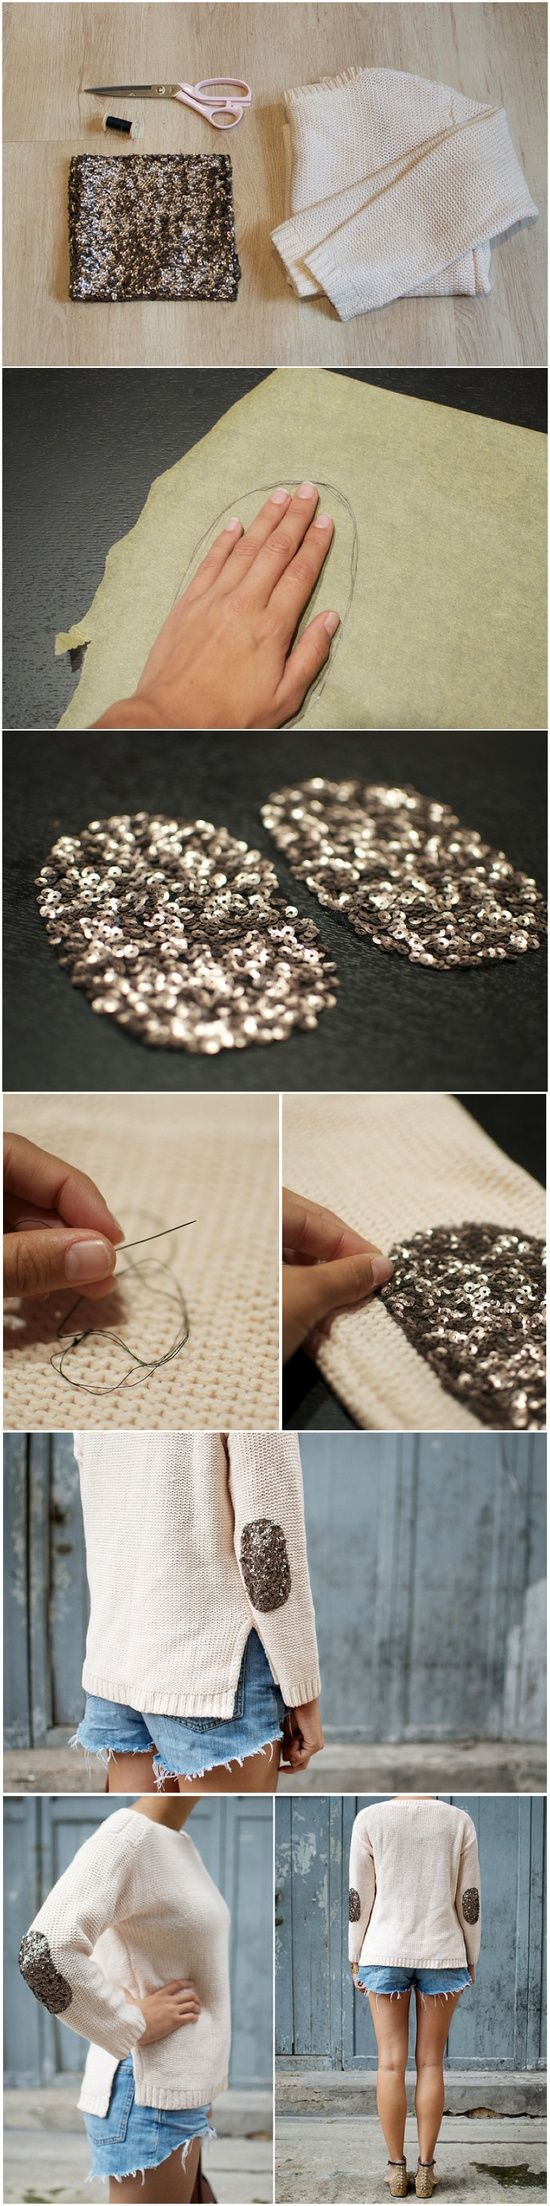 Adorable! Sequin elbow patches from a pair